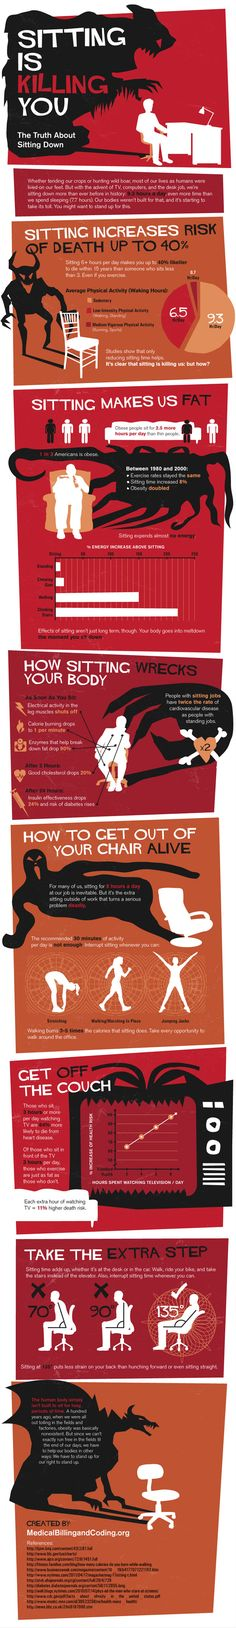 "HEALTHY LIFESTYLE - ""Sitting is Killing You - The Truth about Sitting Down""."